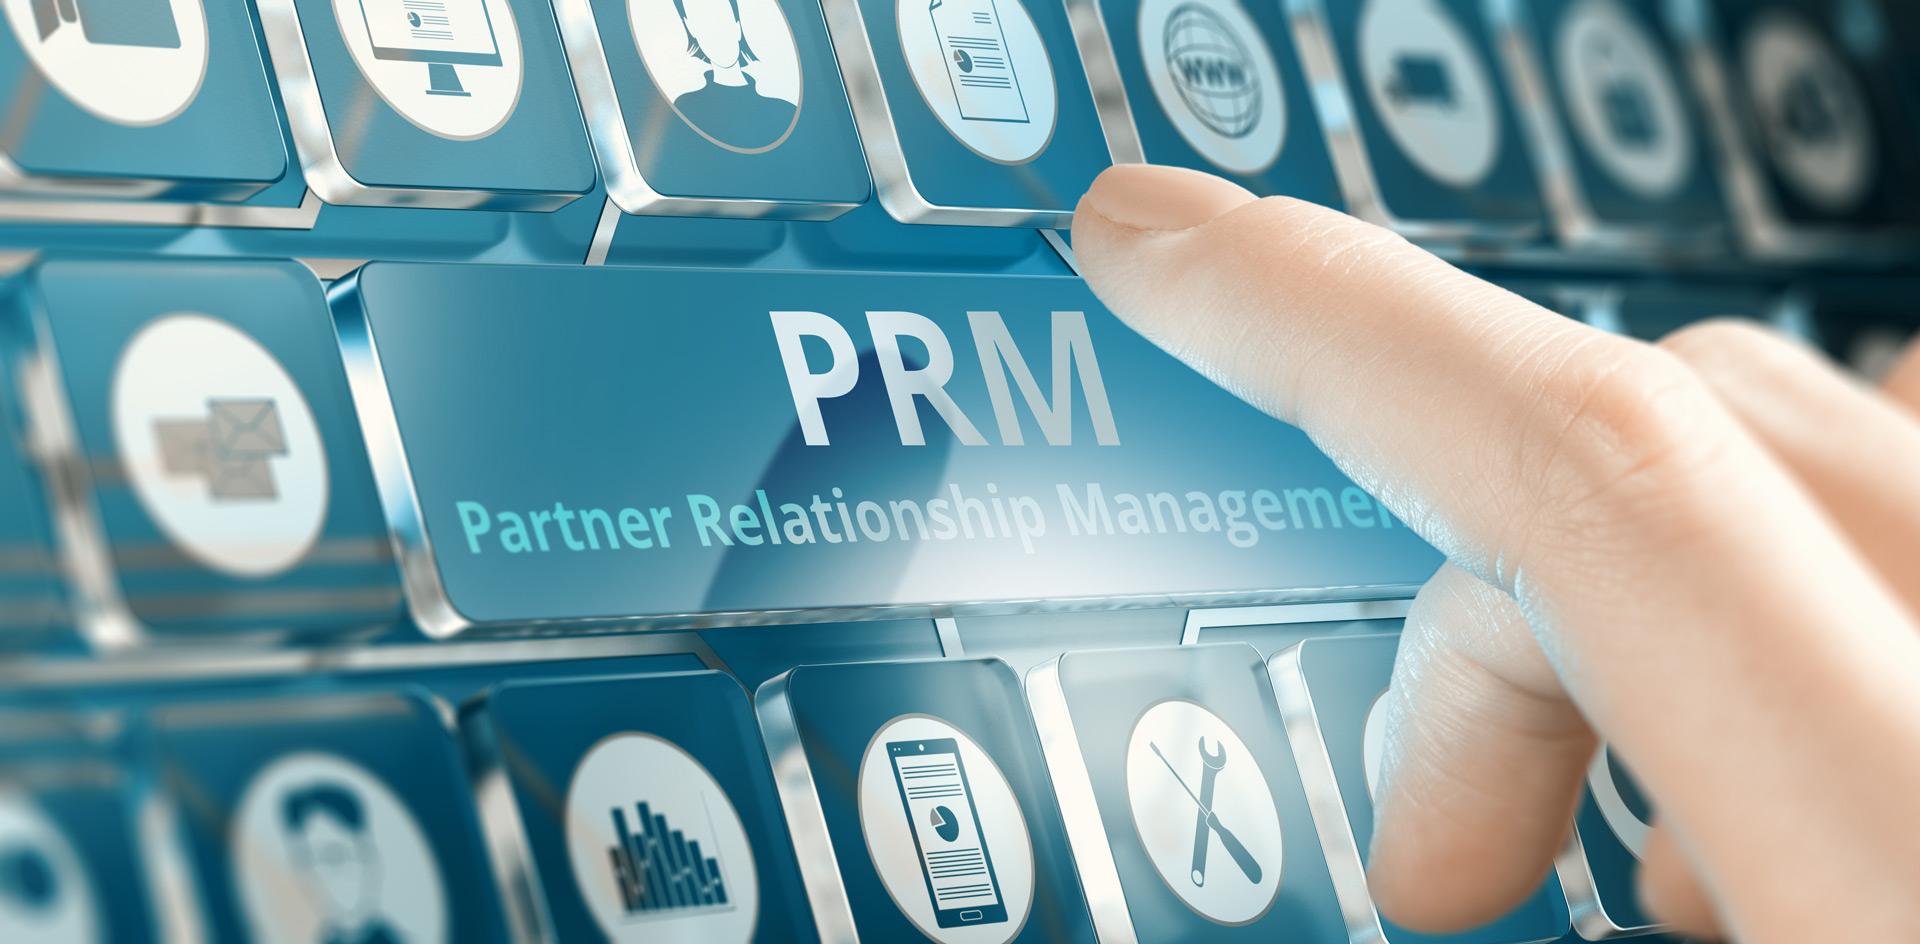 What Can PRM Software Automate?